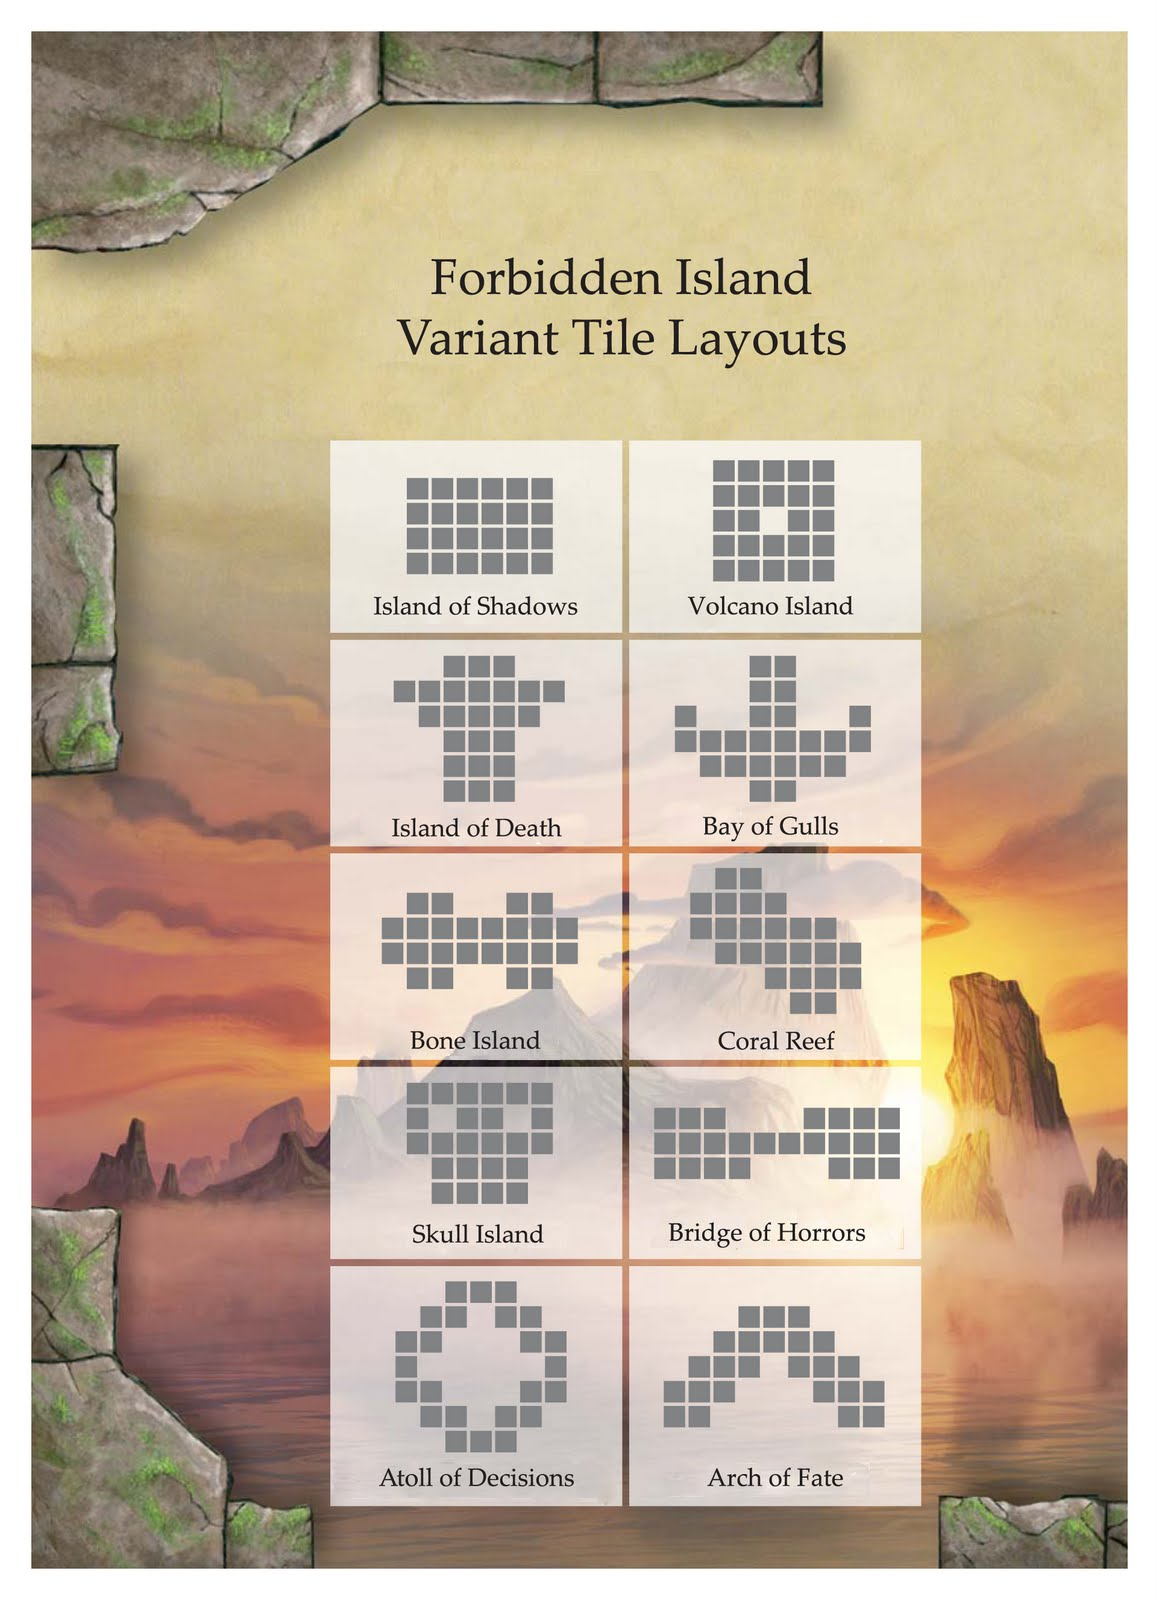 Official Variant Tile Layouts   Forbidden Island   BoardGameGeek